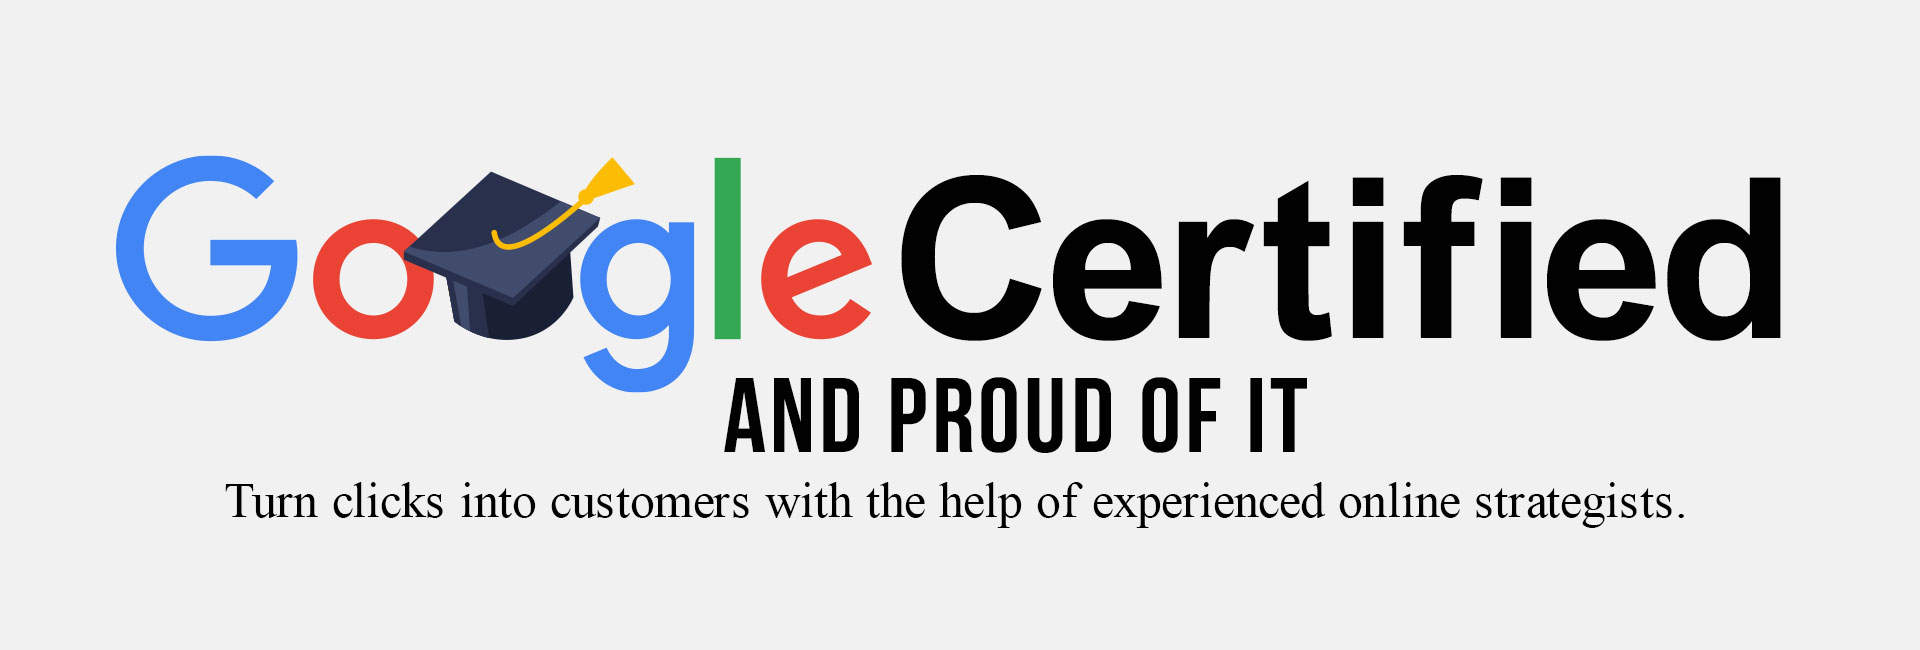 Google Certified and Proud of it